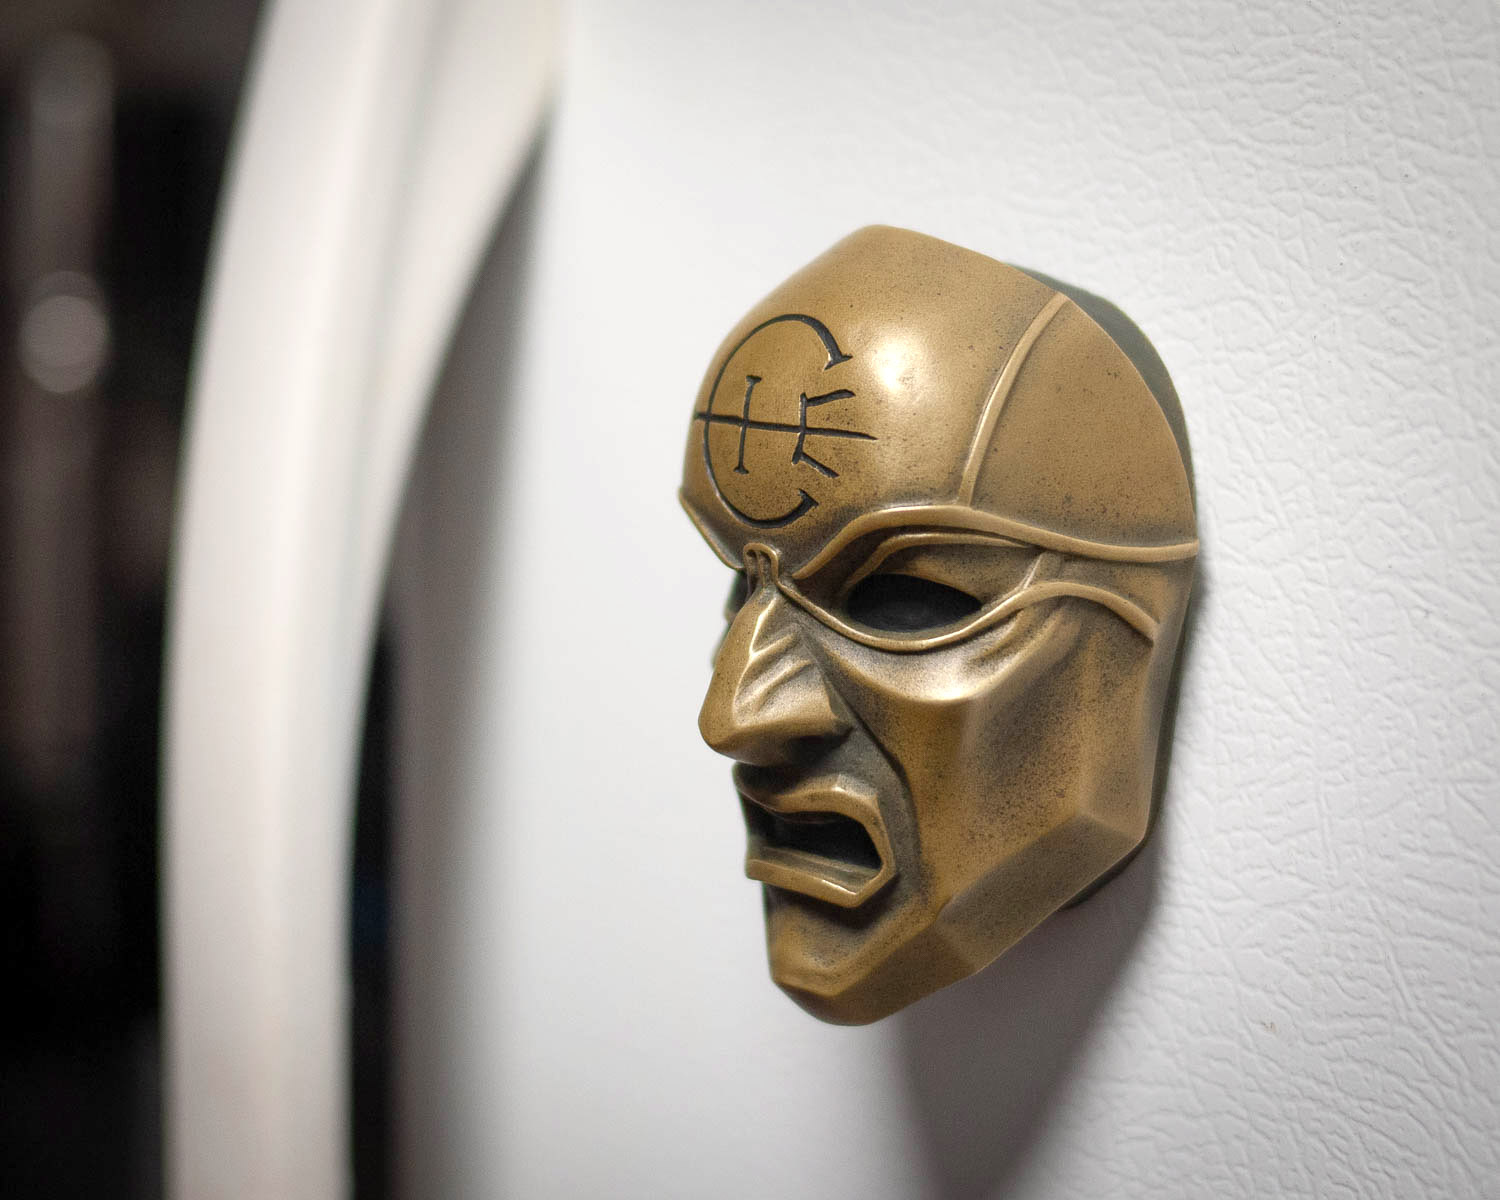 Dishonored Overseer Mini Mask Magnet on Refrigerator